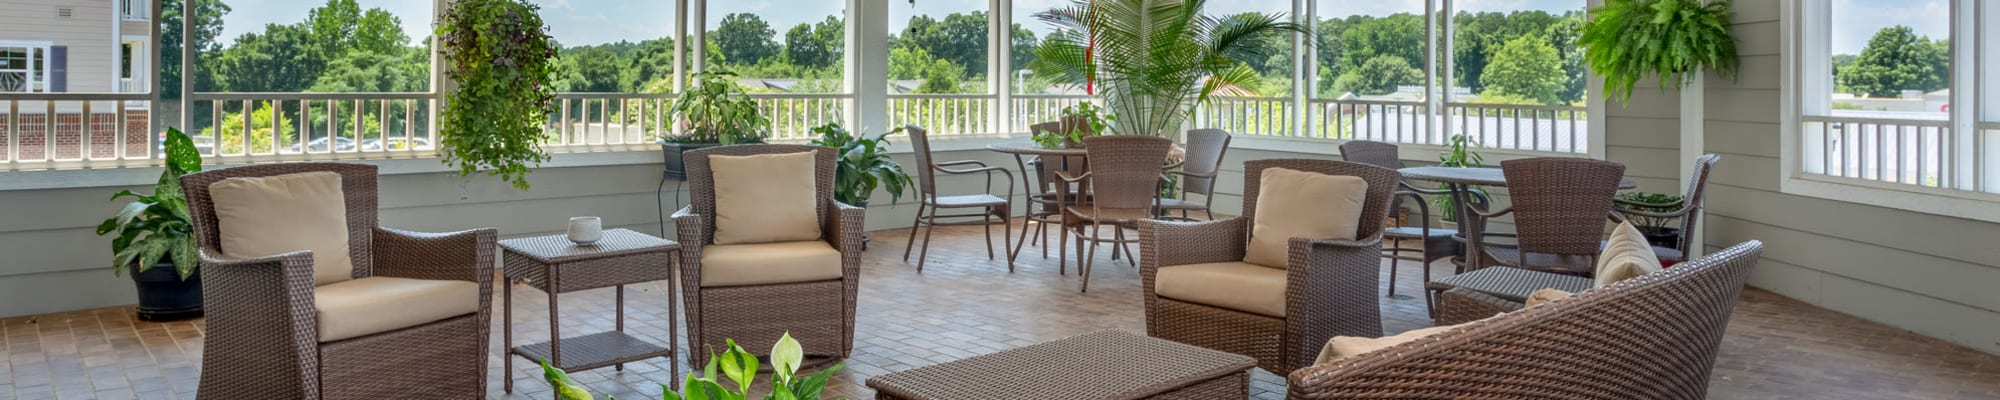 Our Community at Harmony at Five Forks in Simpsonville, South Carolina